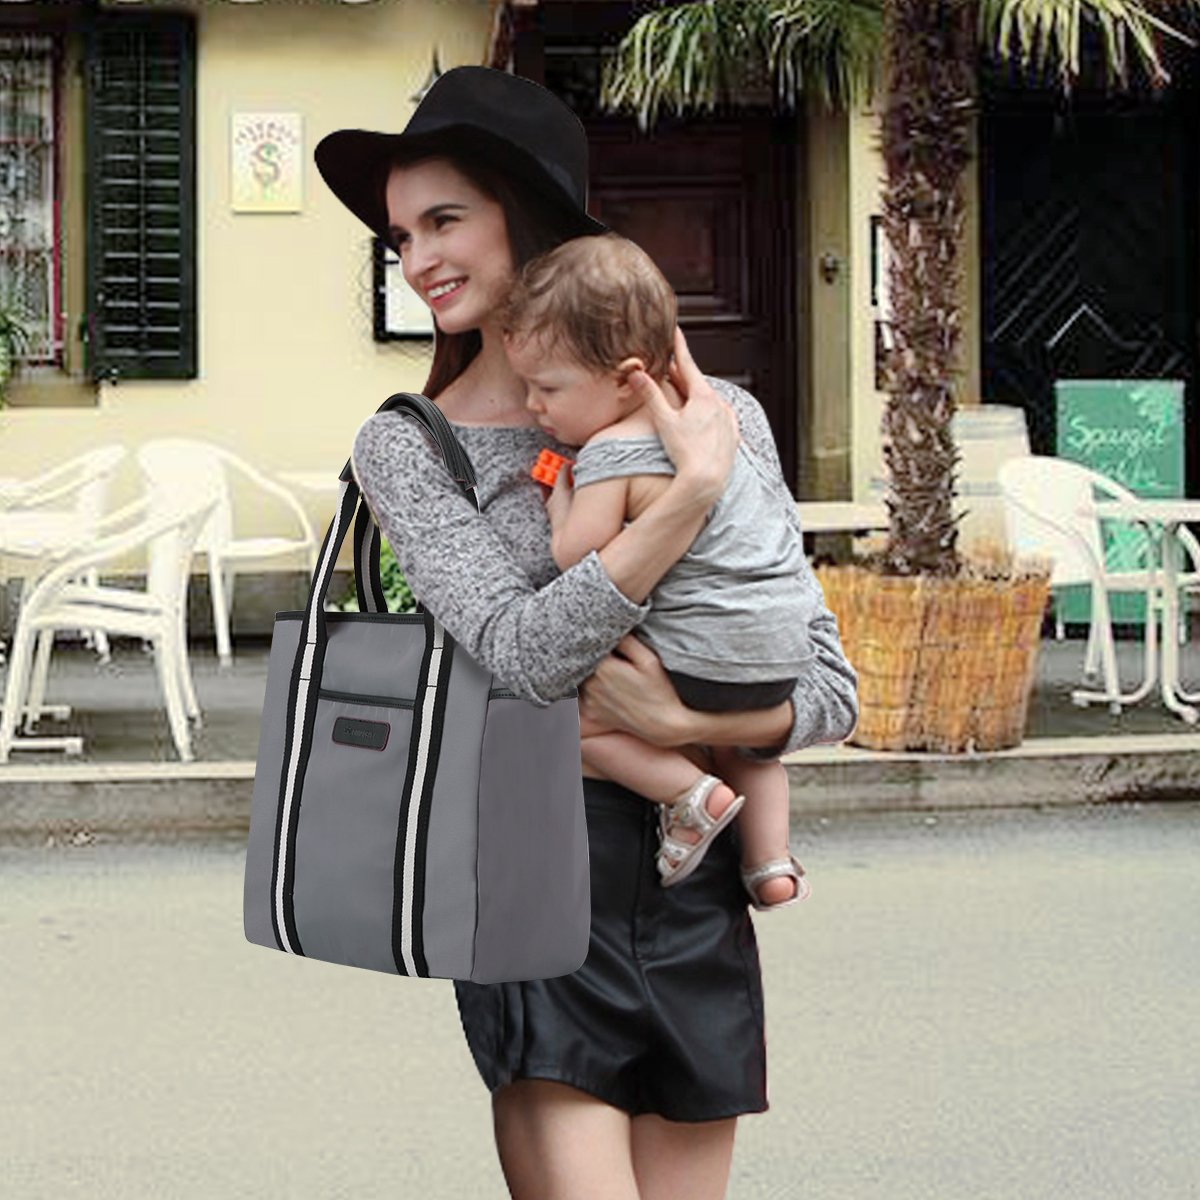 S-ZONE Baby Diaper Large Bag Handbag with Changing Pad and Insulated Pocket Tote/£/¨Blue/£/©